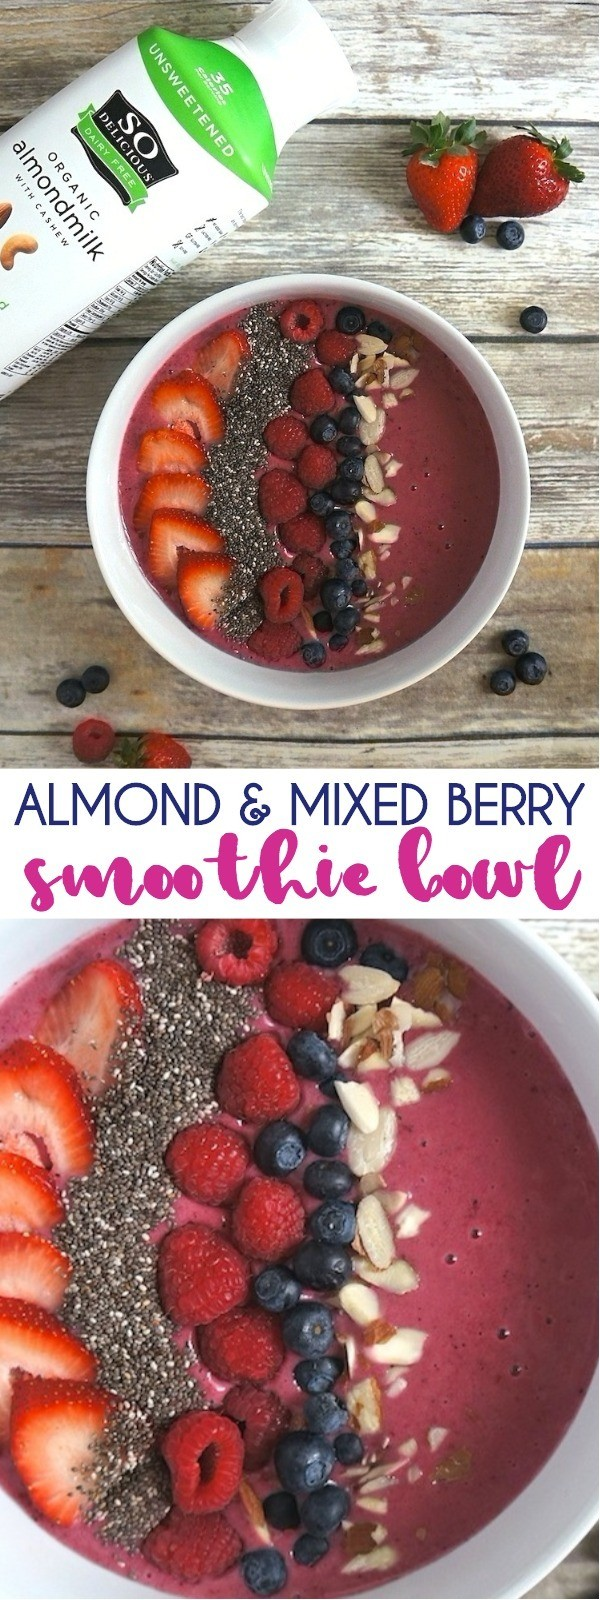 Almond Mixed Berry Smoothie Bowl Recipe - Breakfast Is Served